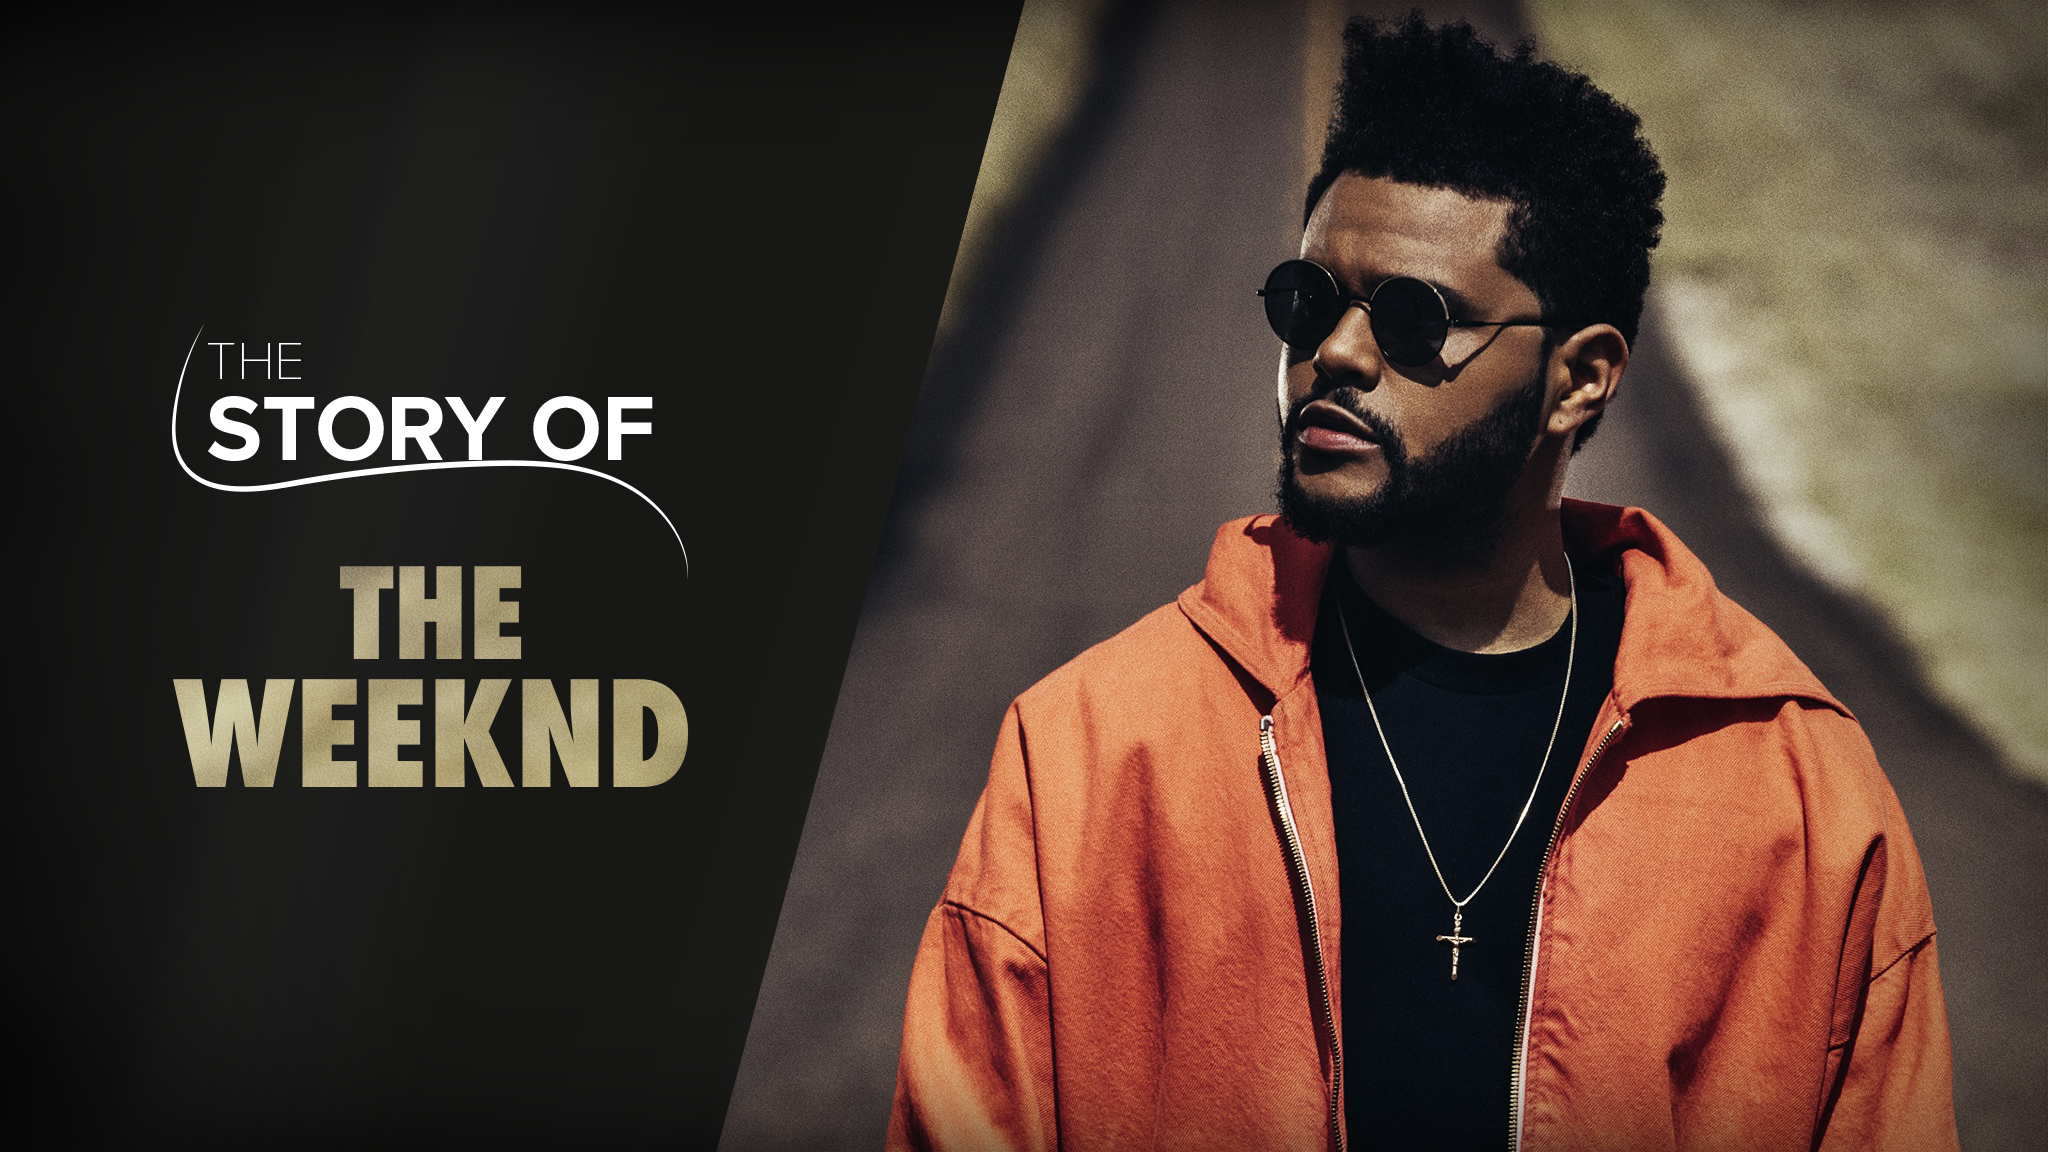 TheStoryof_TheWeeknd_16_9